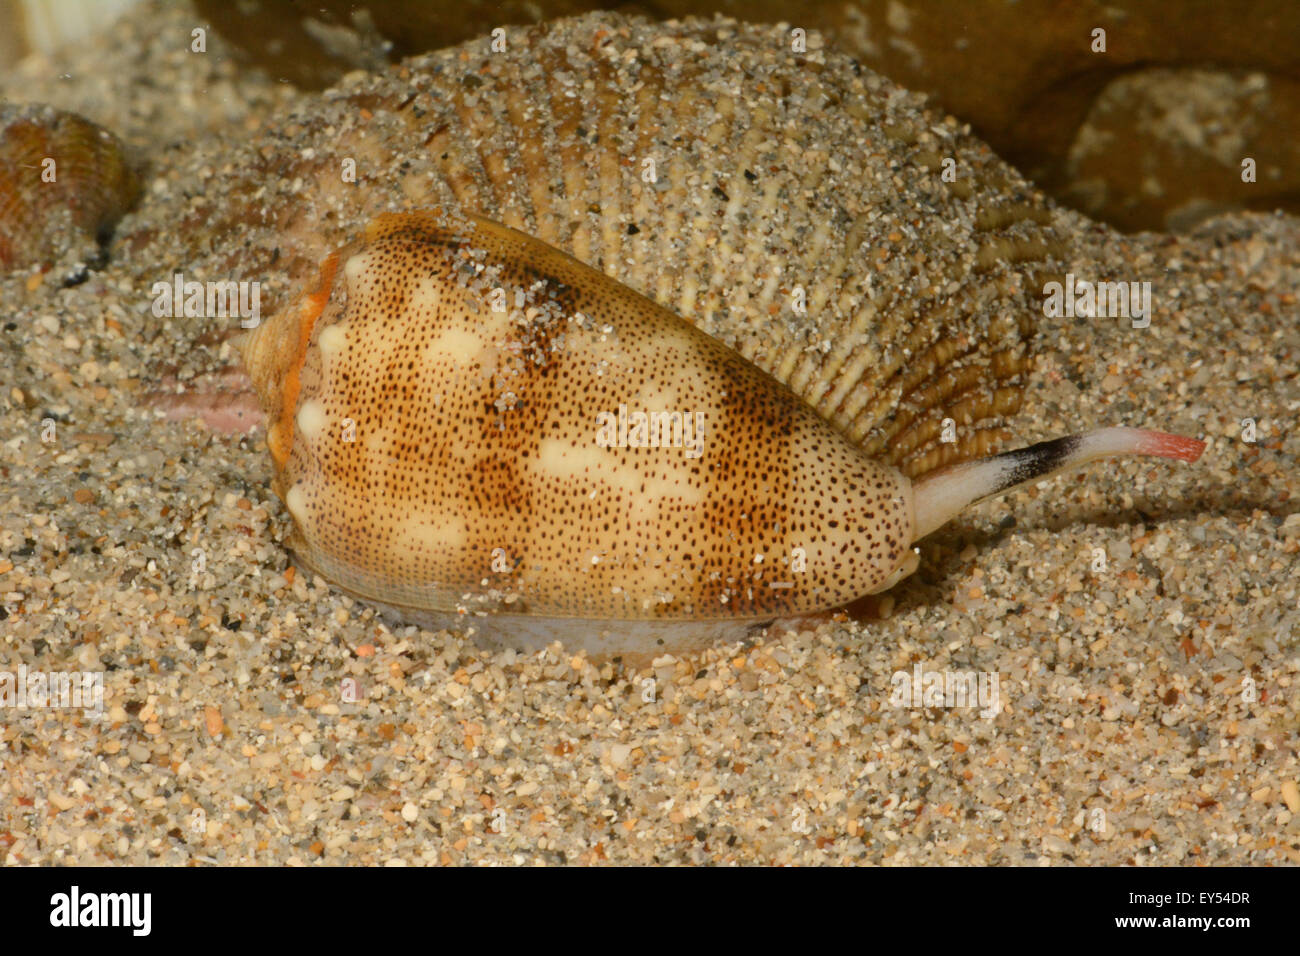 Sand-dusted Cone on sand - New Caledonia - Stock Image